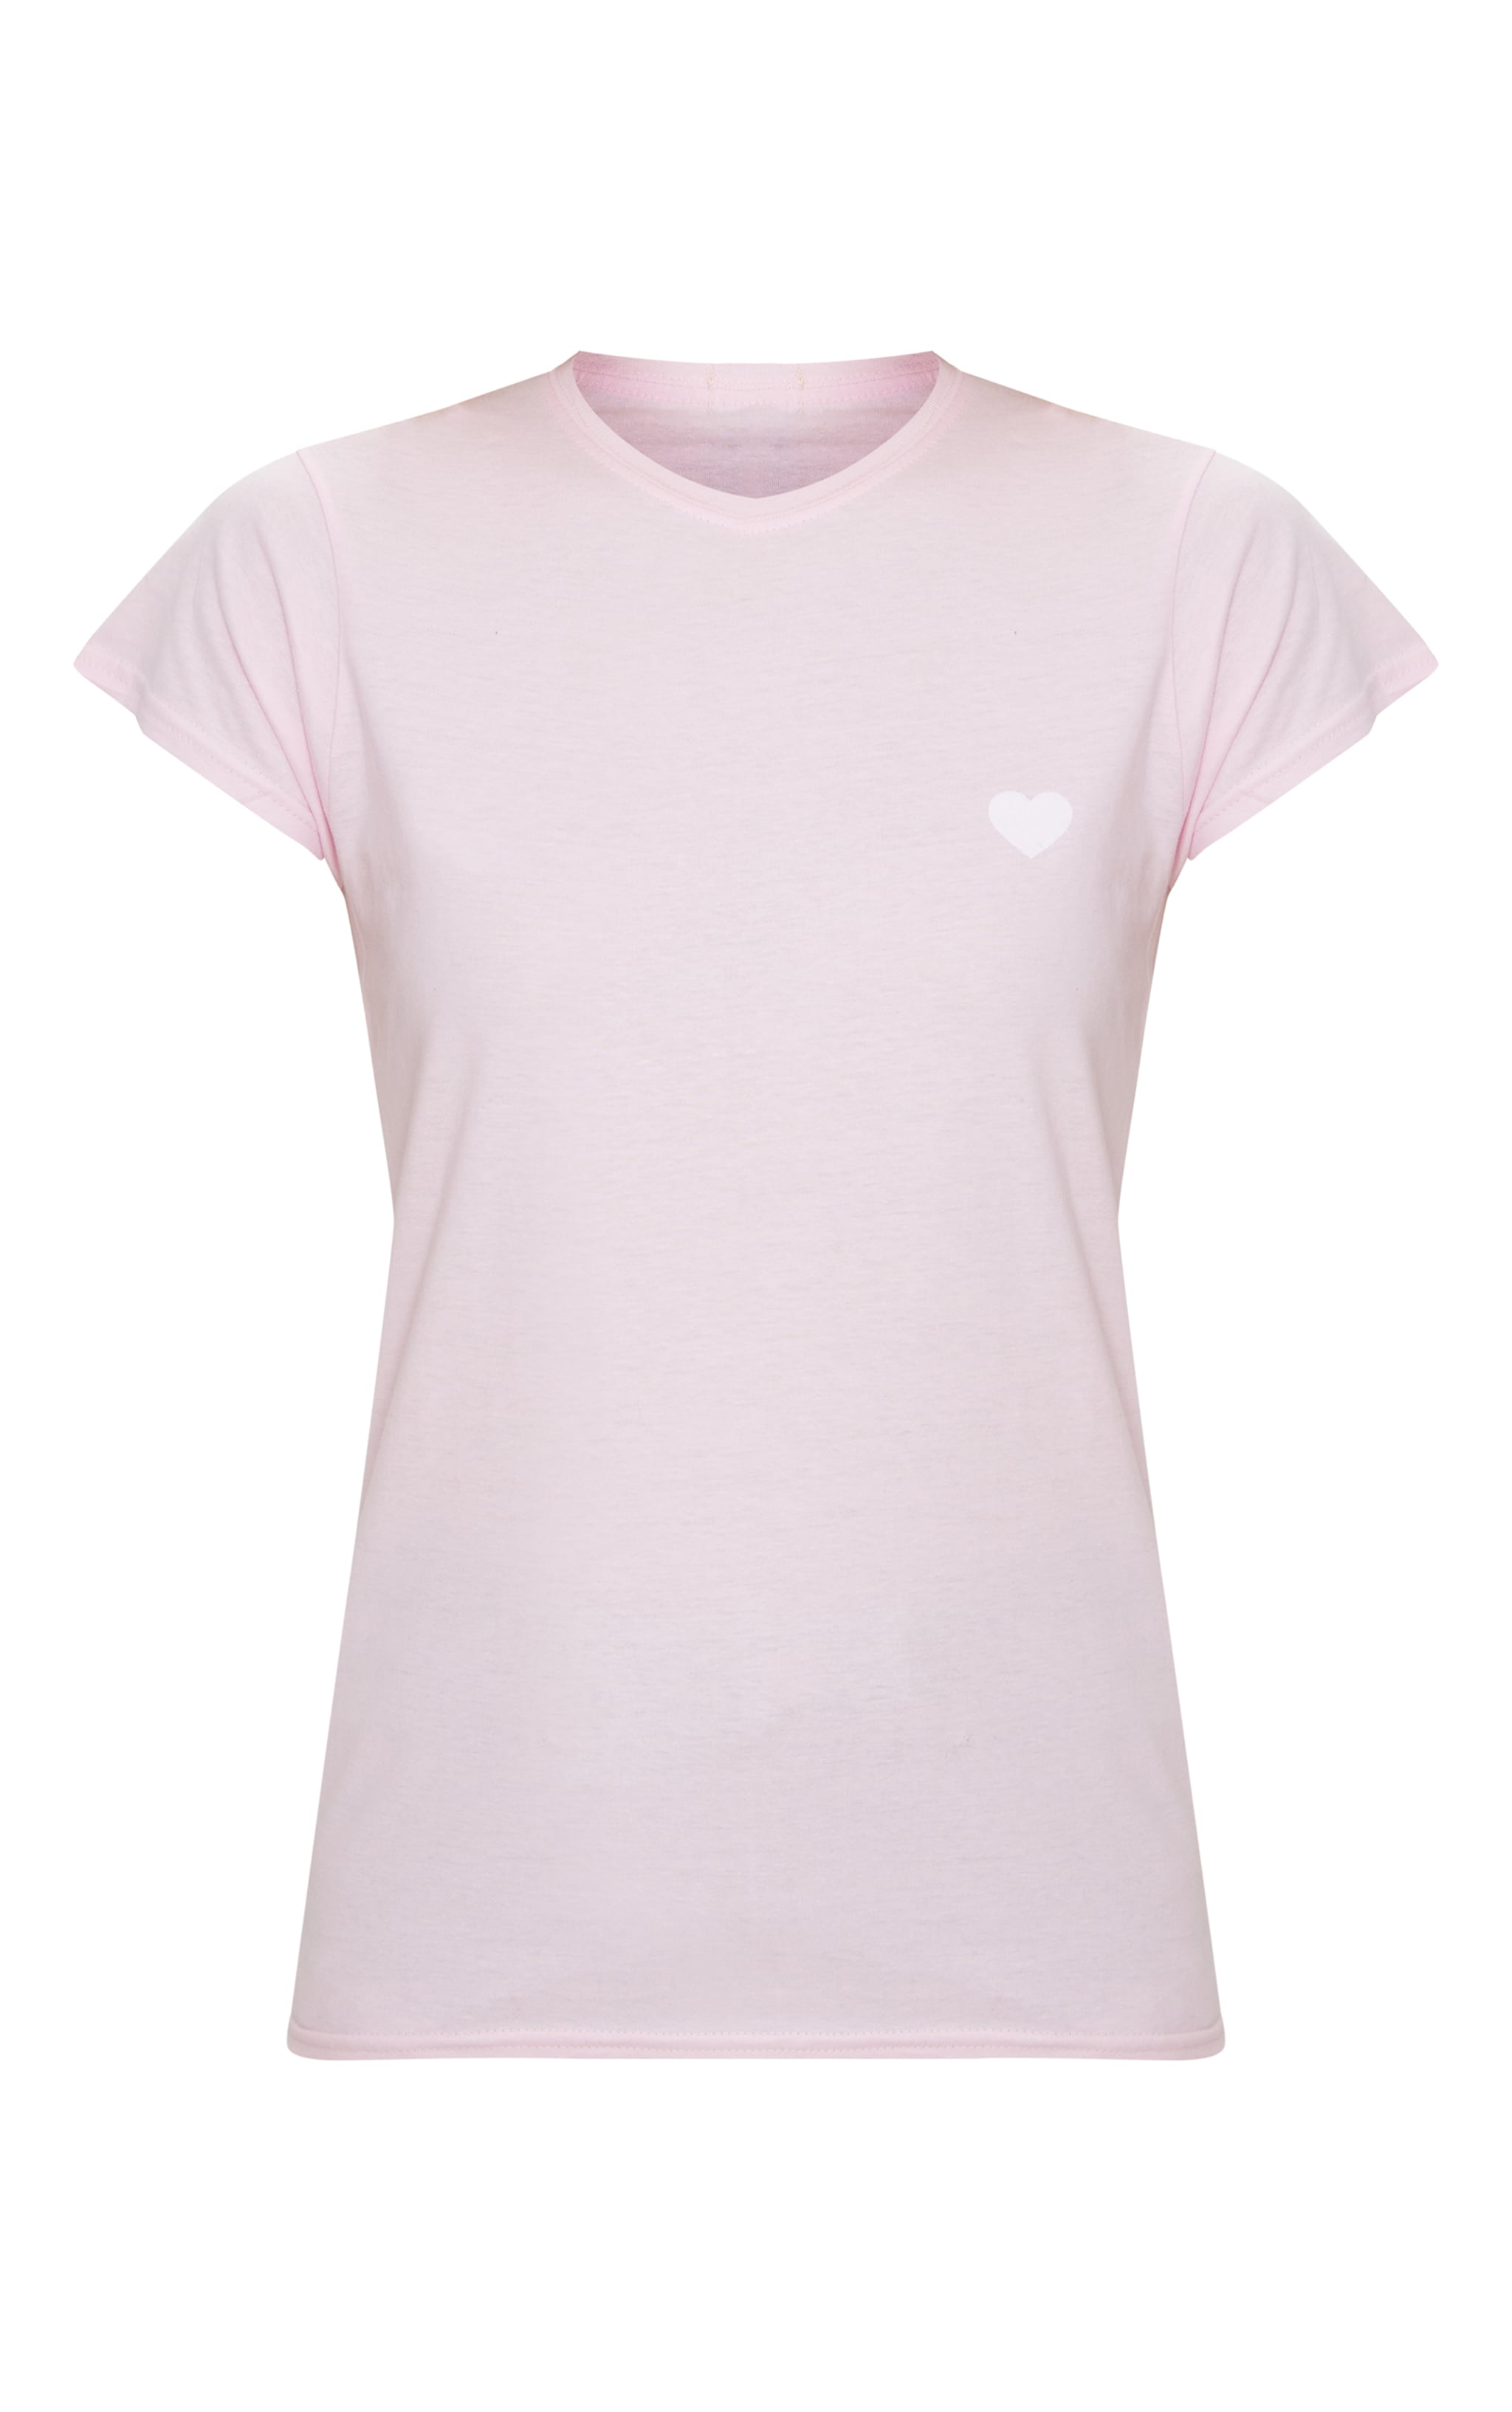 Pink Love Heart Jersey T Shirt 3